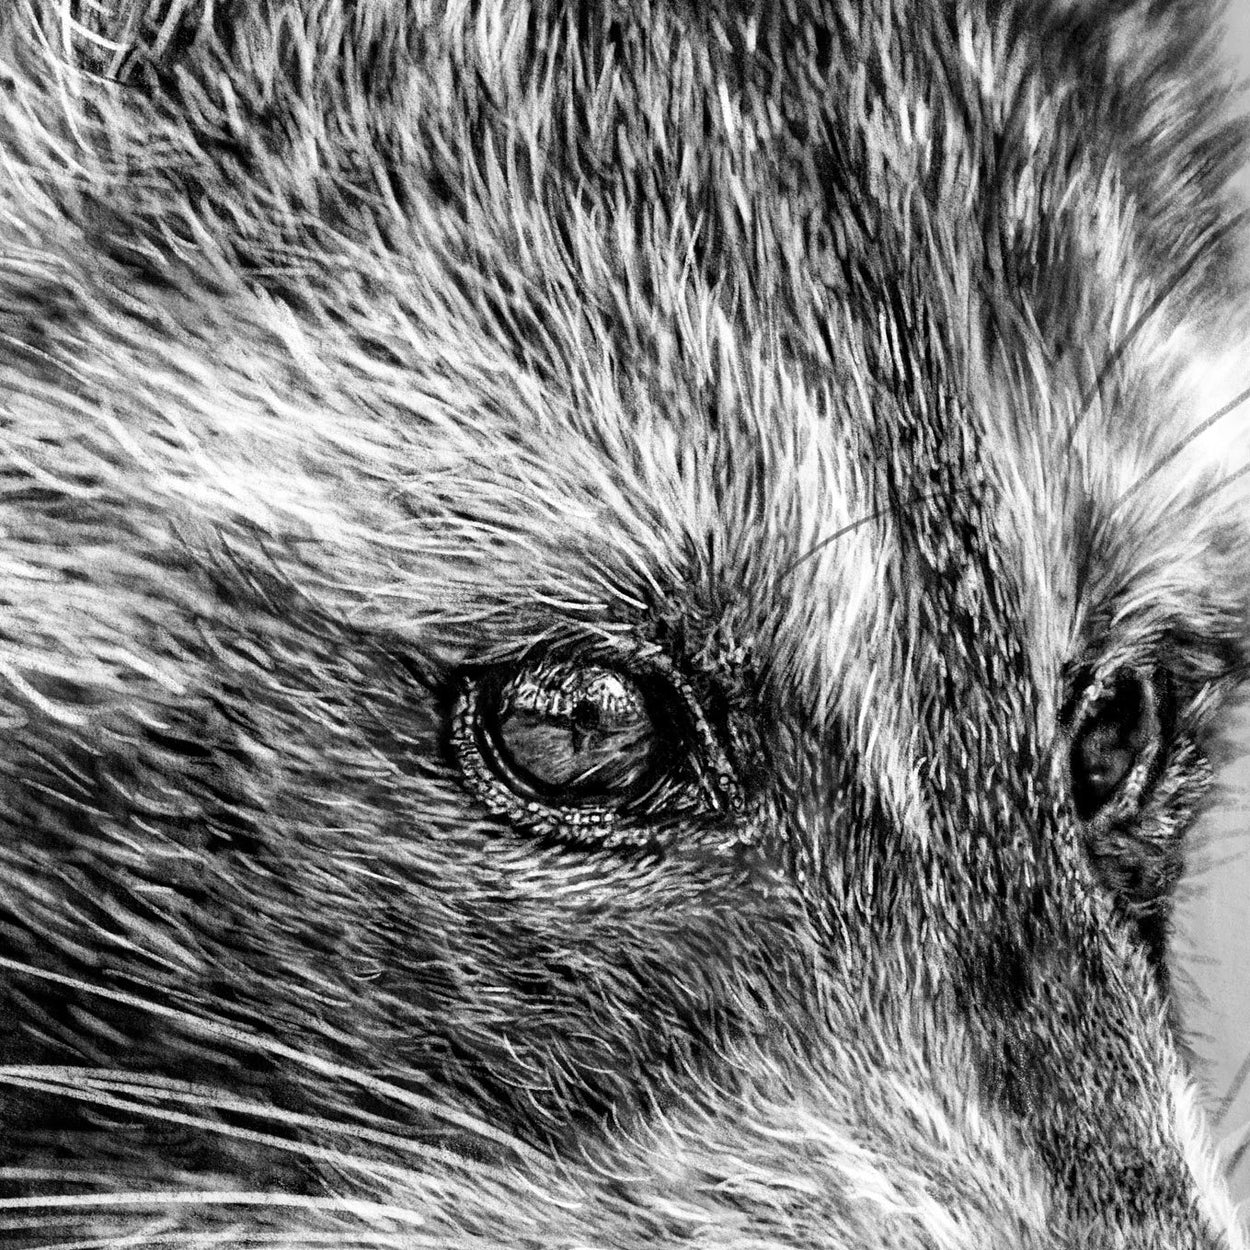 Raccoon Procreate Drawing Close-up - The Thriving Wild